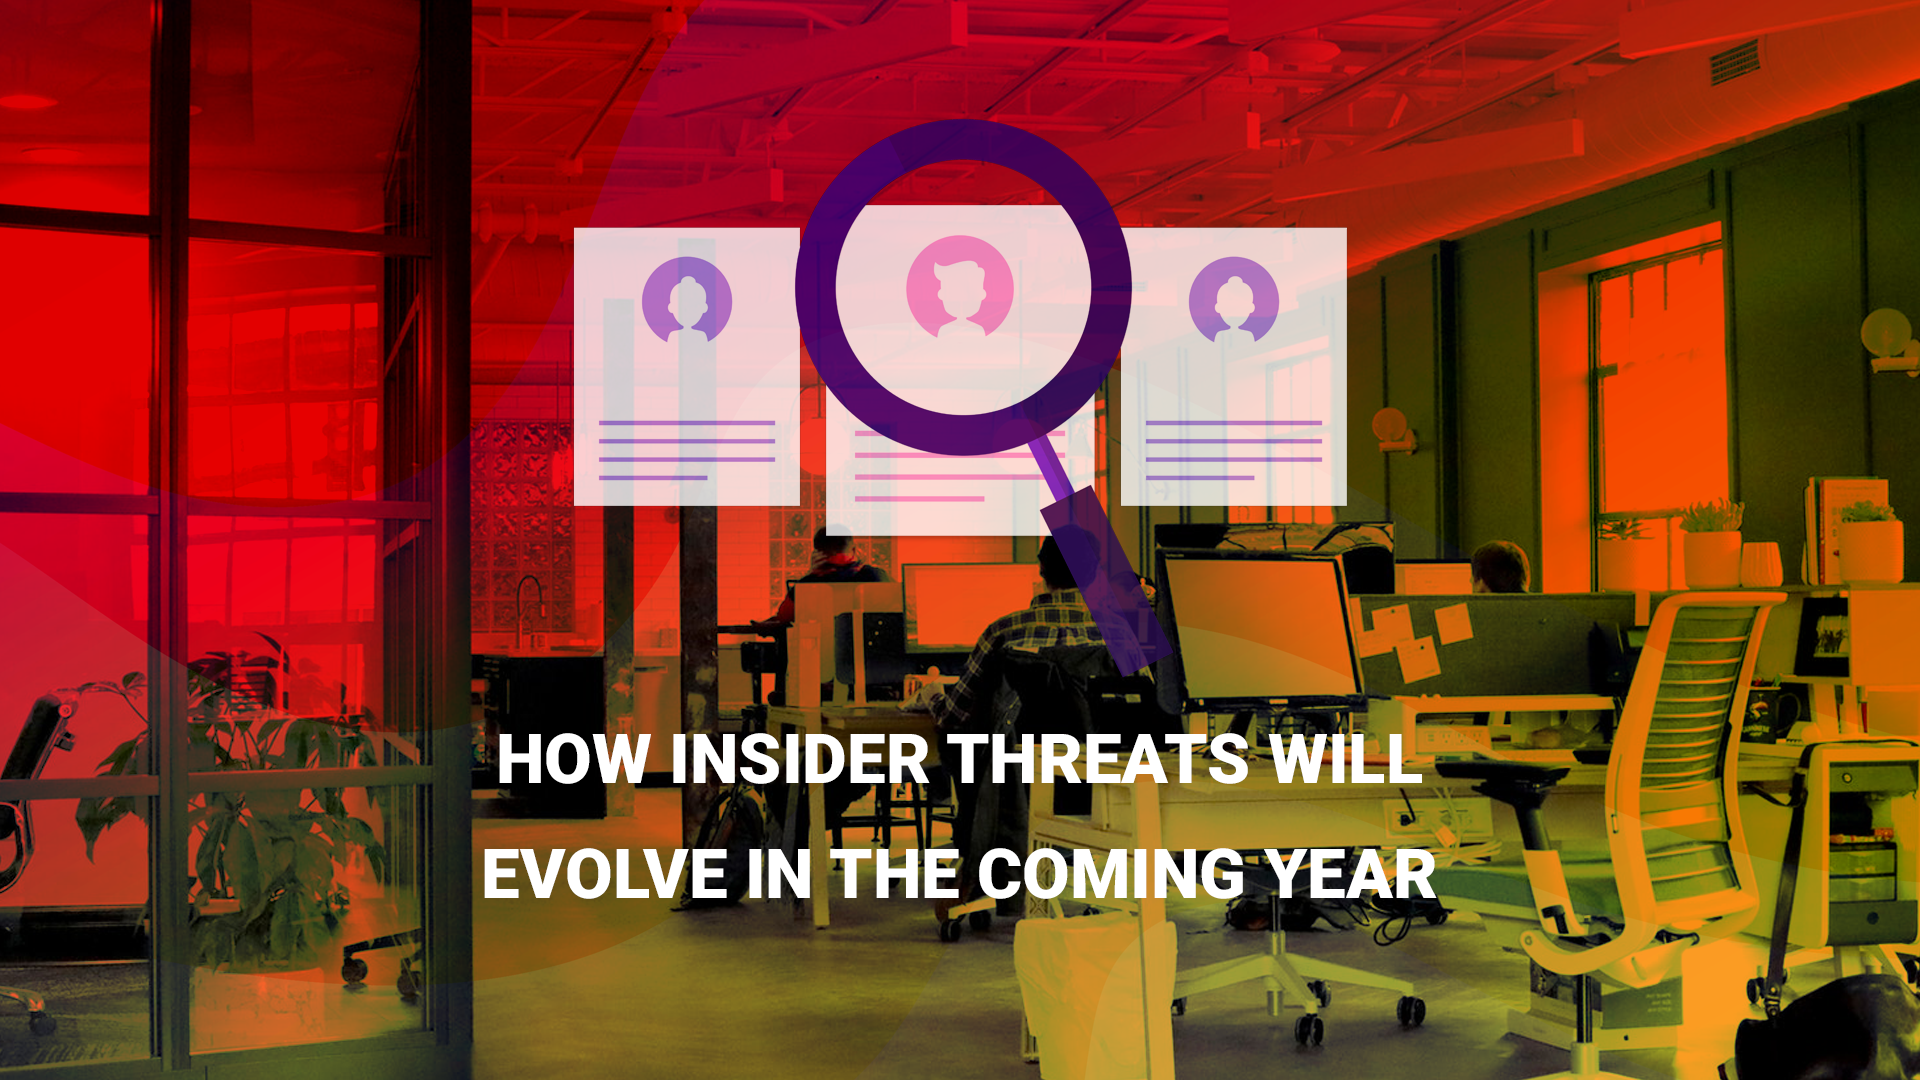 How Insider Threats Will Evolve in The Coming Year